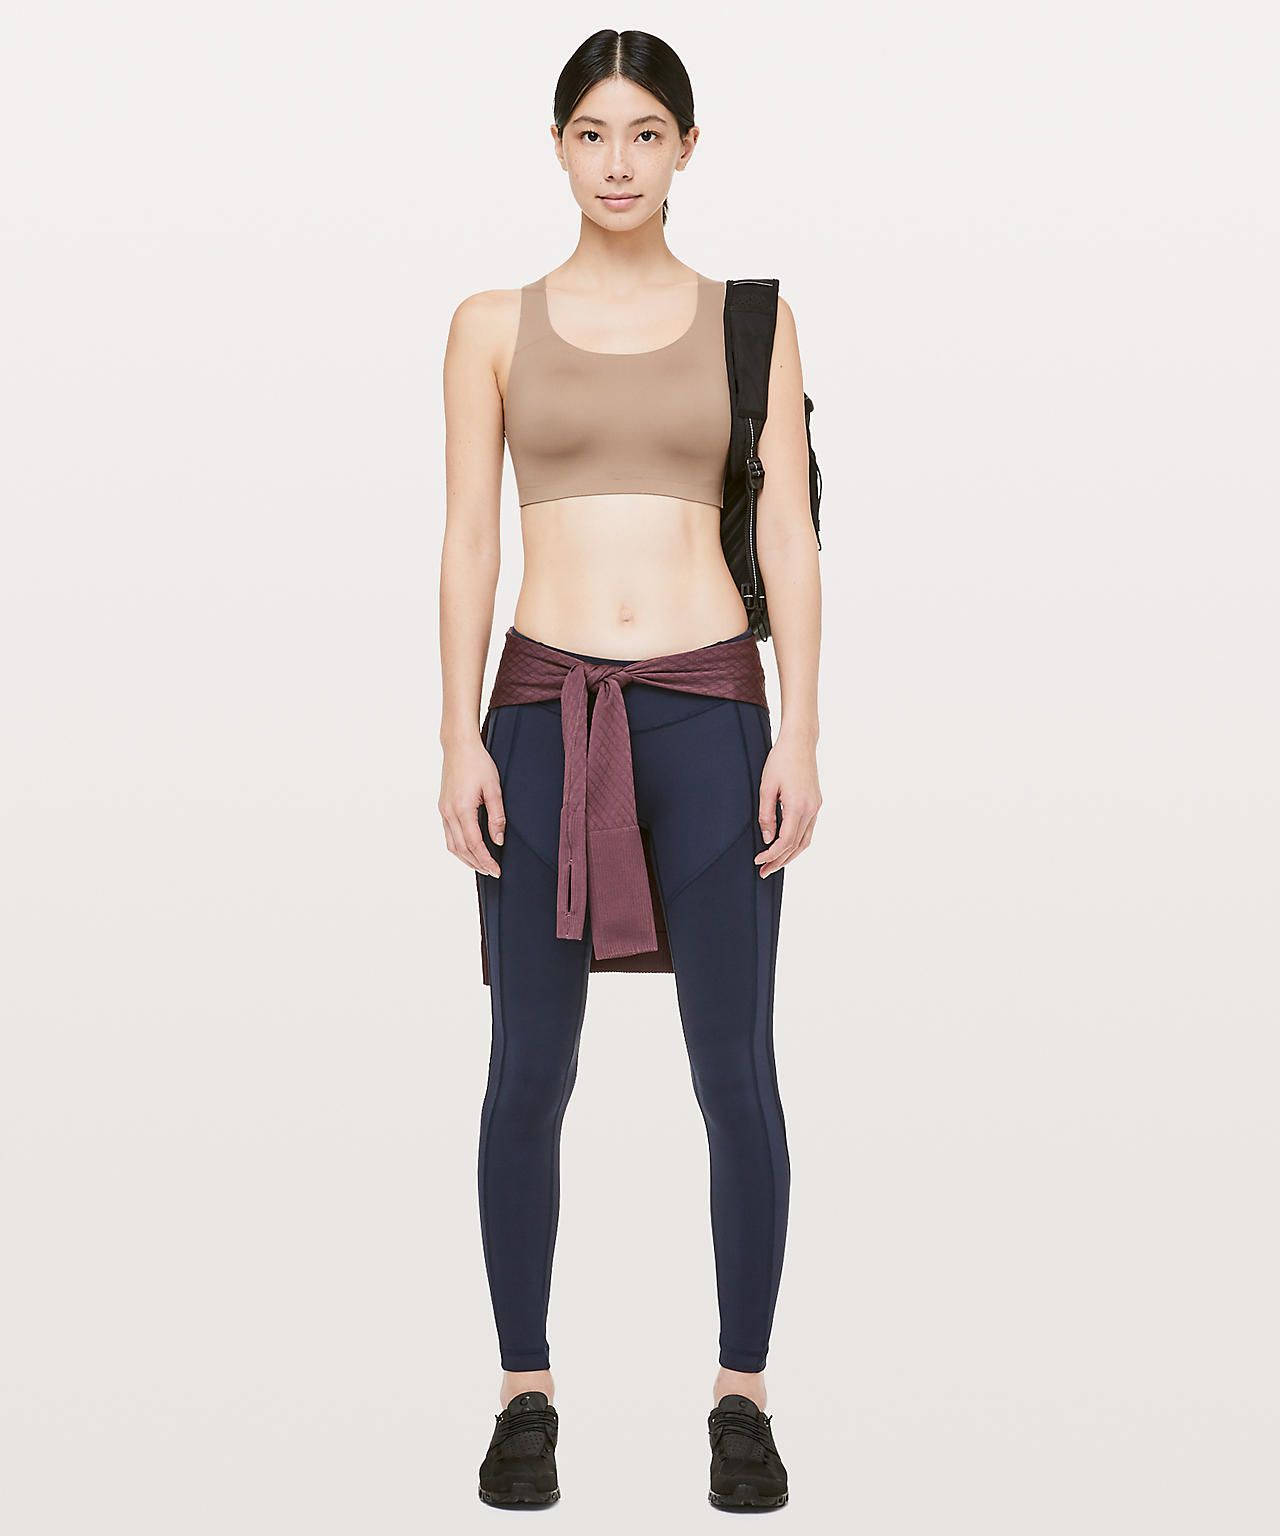 Enlite Bra*High Support, AE Cup Online Only Women's